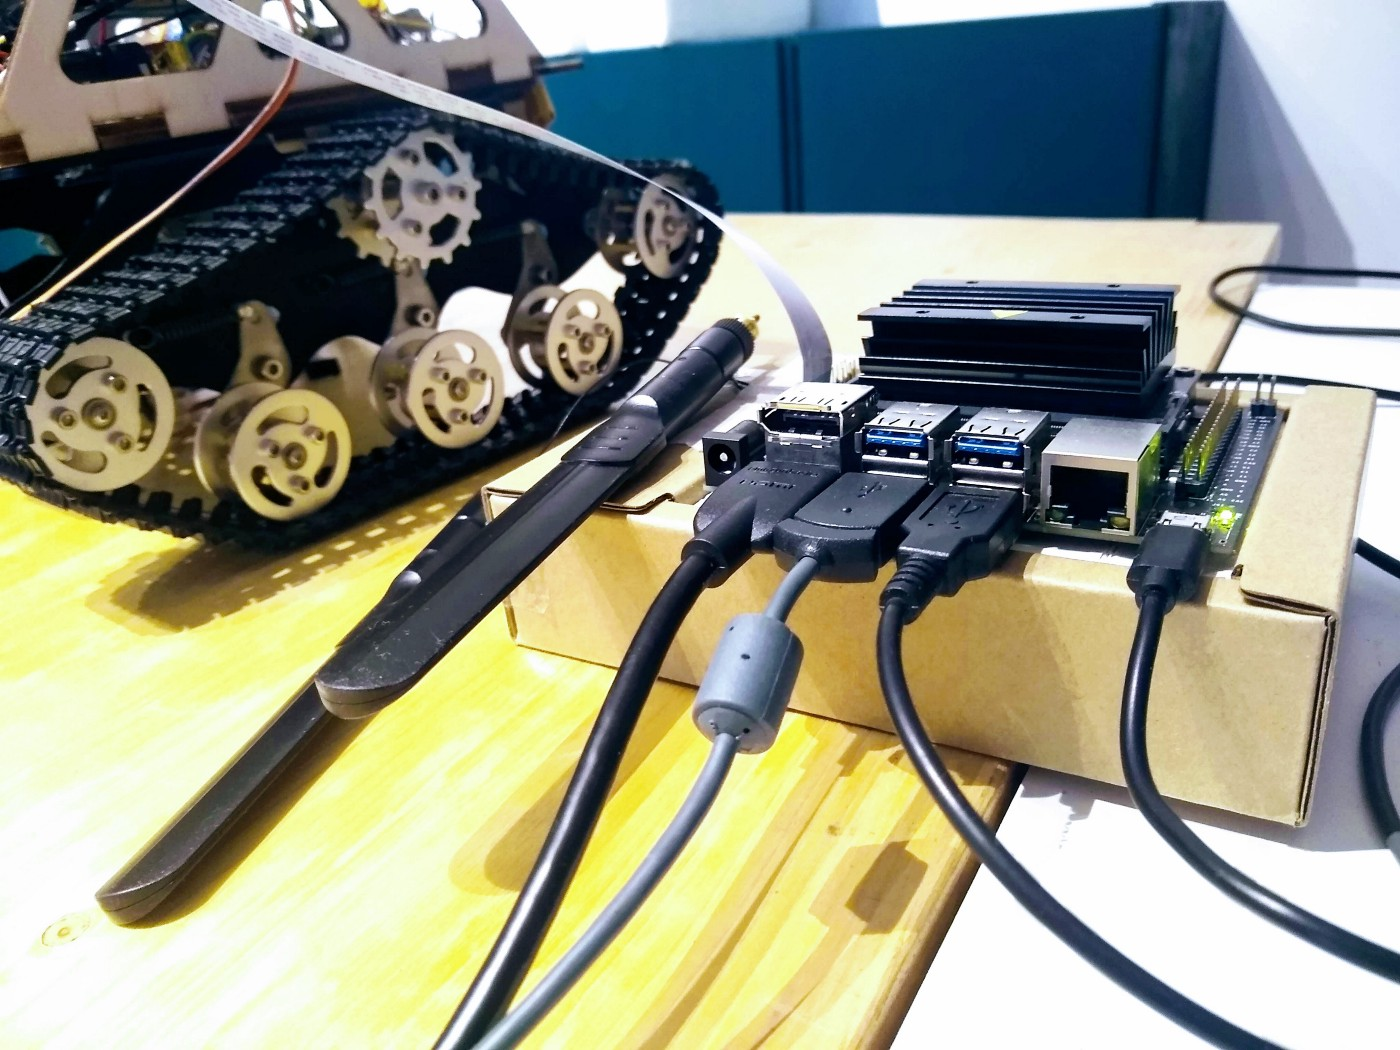 Wireless Networking for the Jetson Nano and RPi - Marcus Jones - Medium